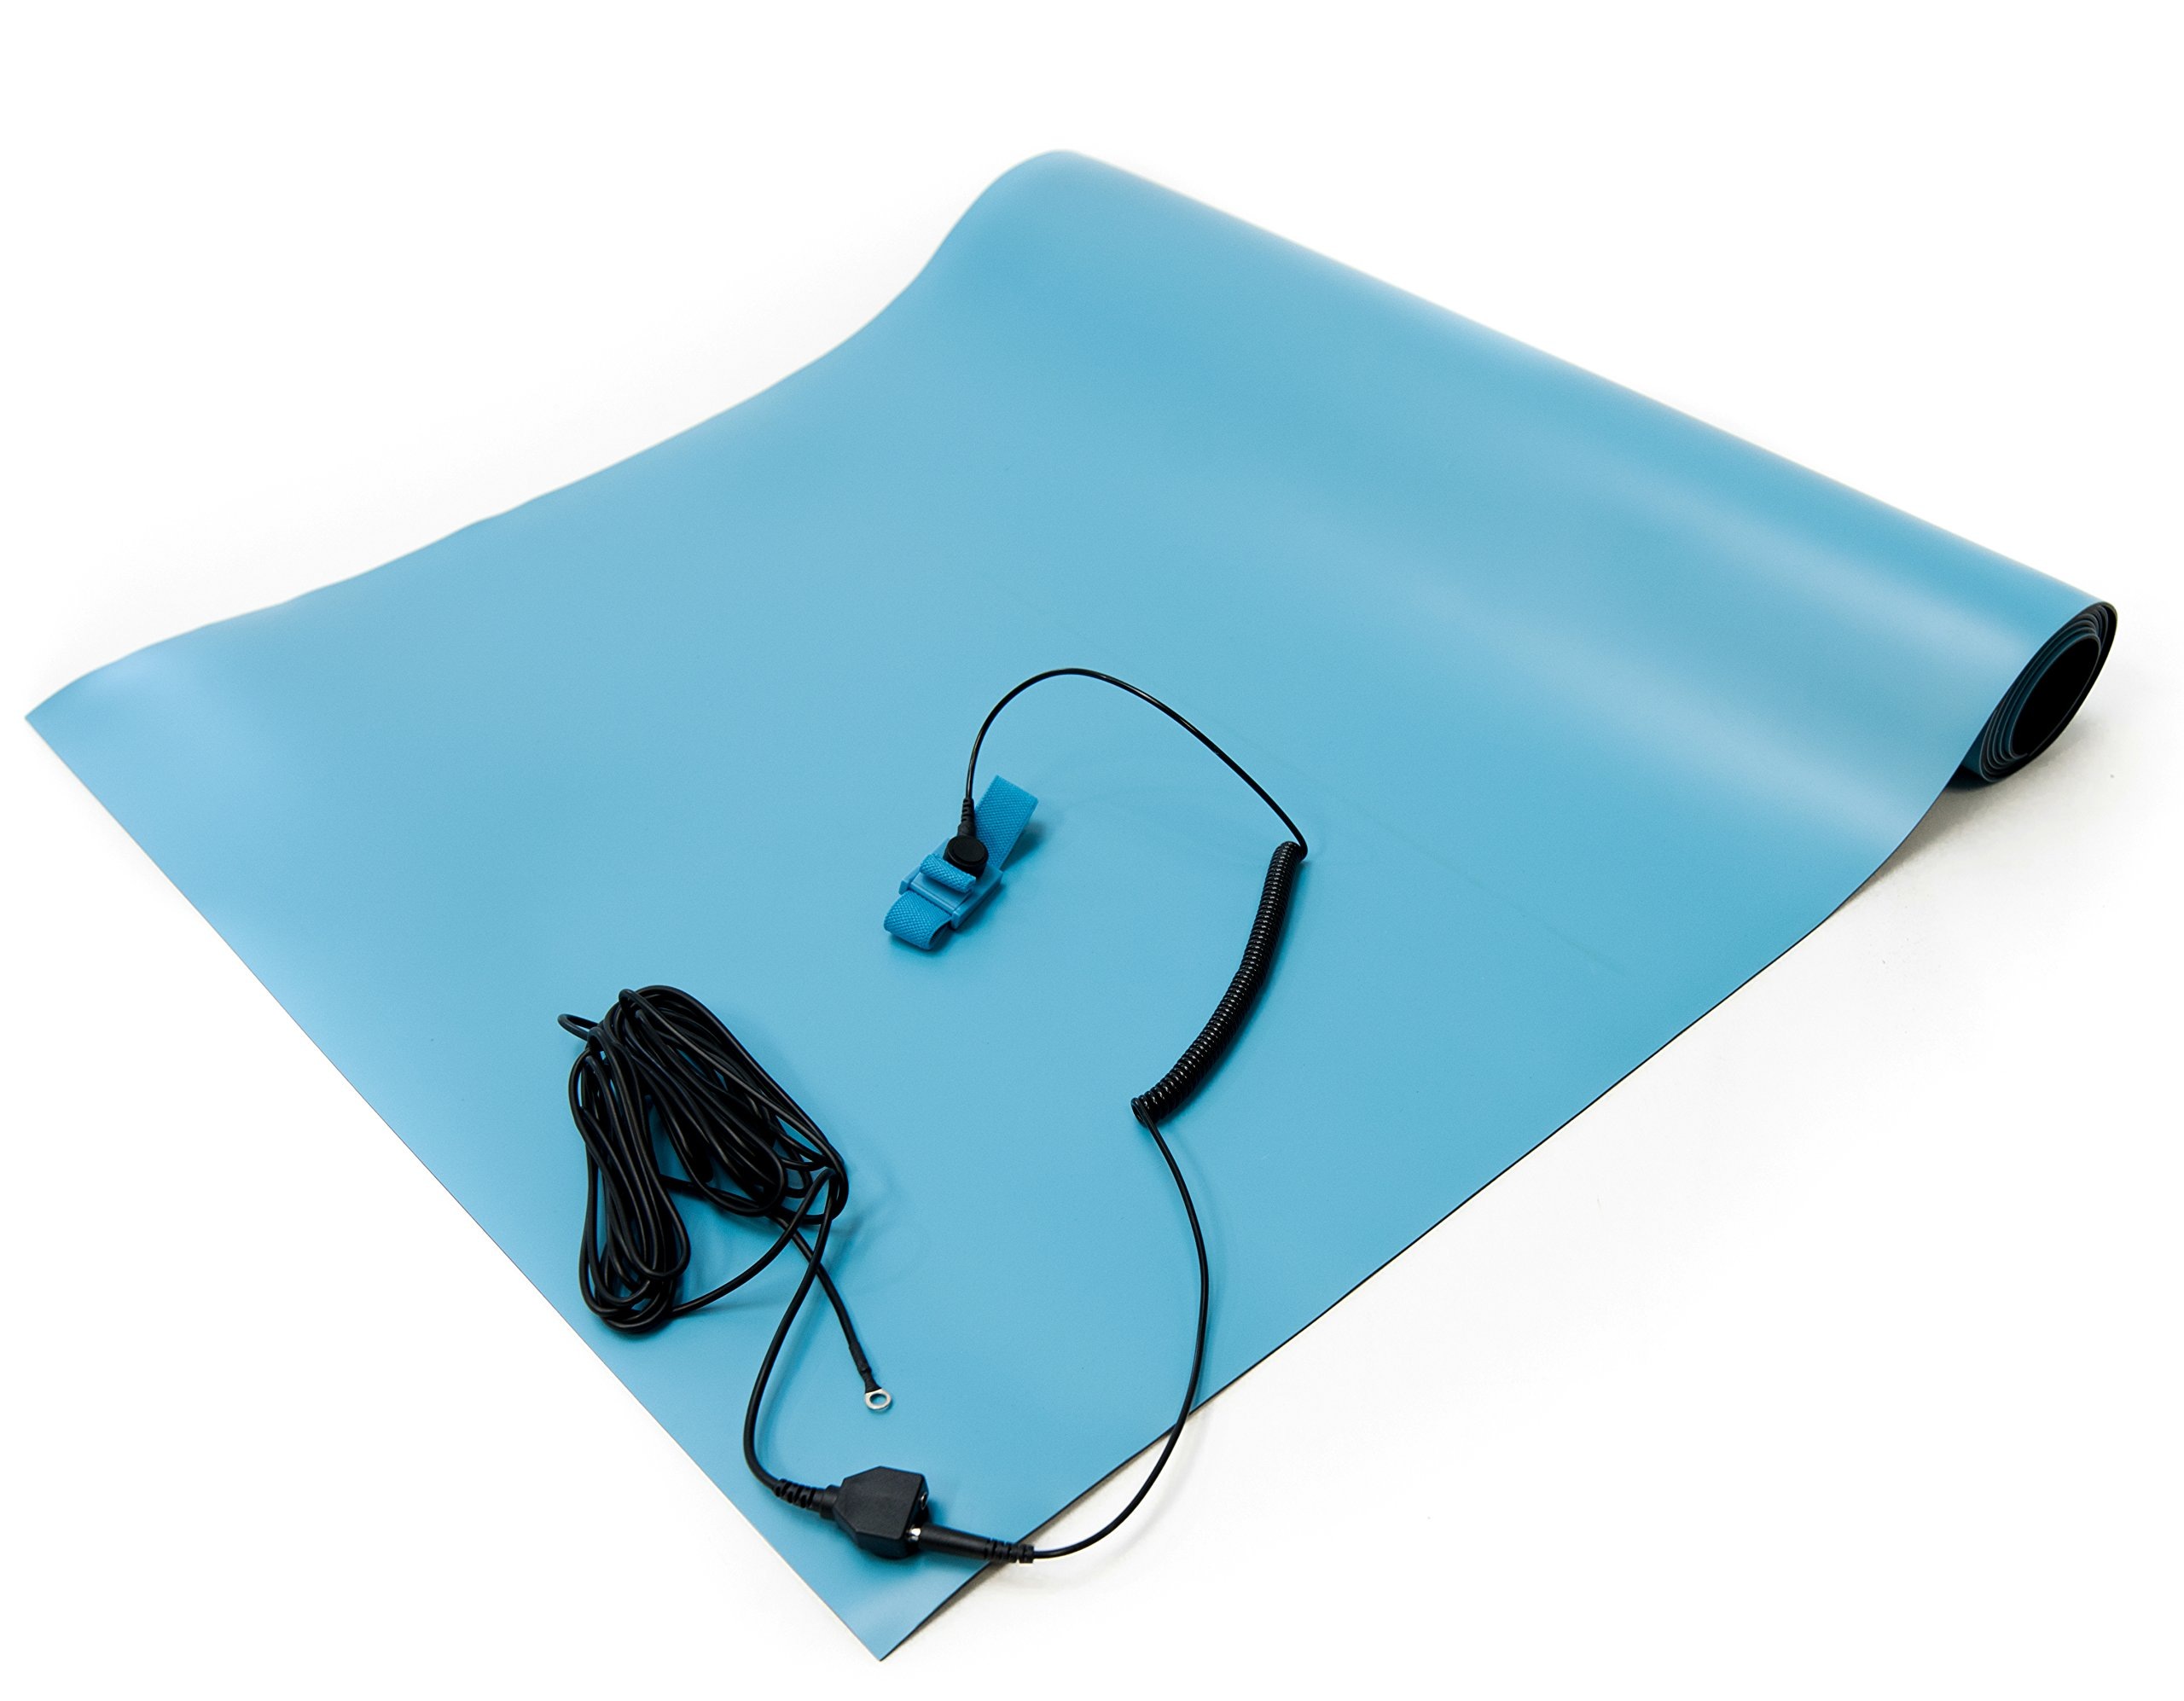 Bertech ESD High Temperature Rubber Mat Kit with a Wrist Strap and Grounding Cord, 18'' Wide x 24'' Long x 0.08'' Thick, Blue